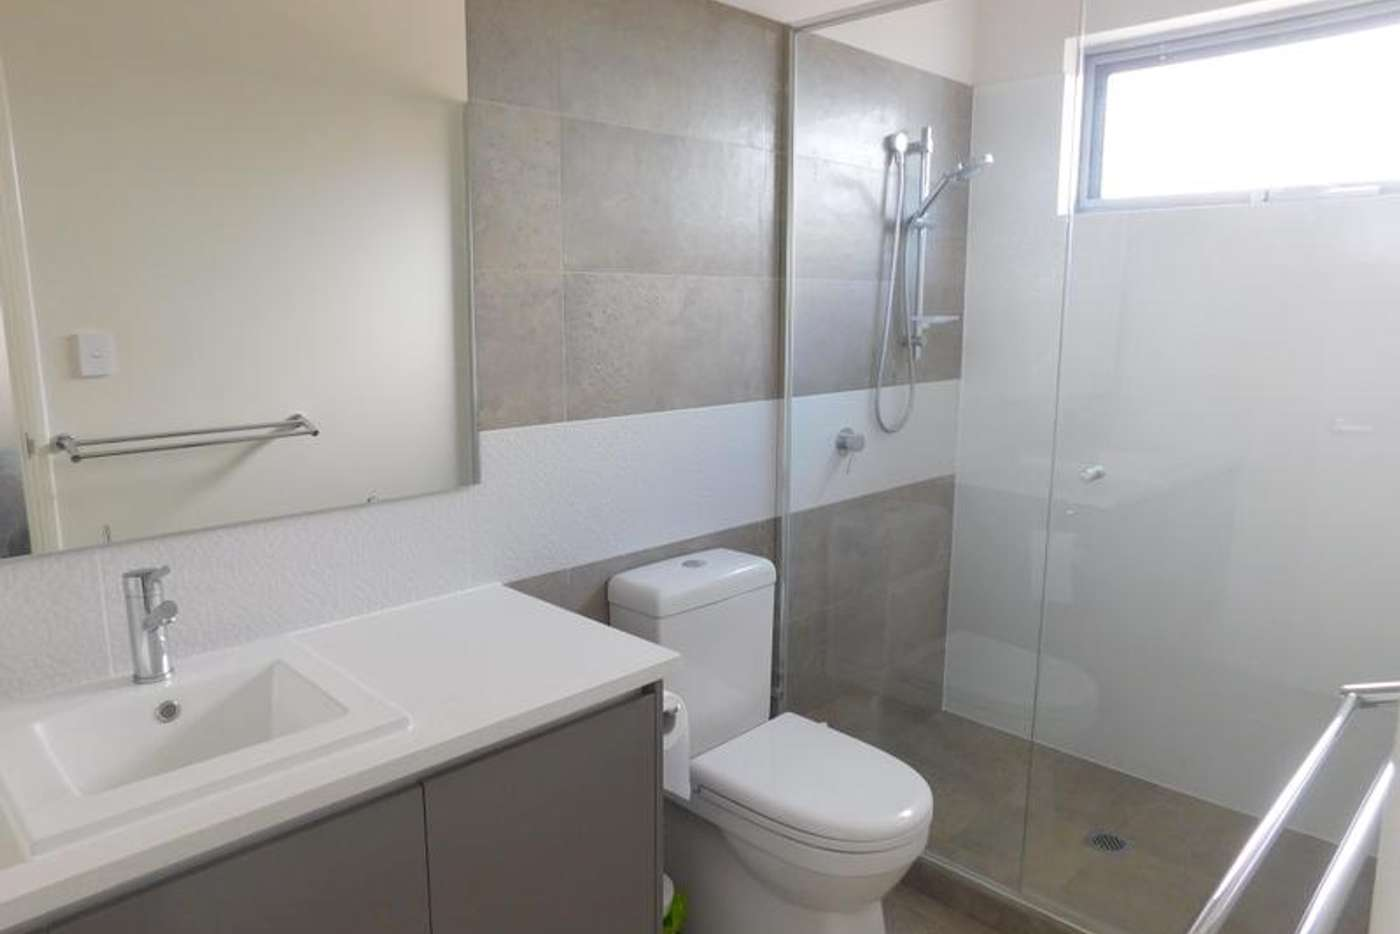 Seventh view of Homely apartment listing, 6/18 Brady Street, Mount Hawthorn WA 6016